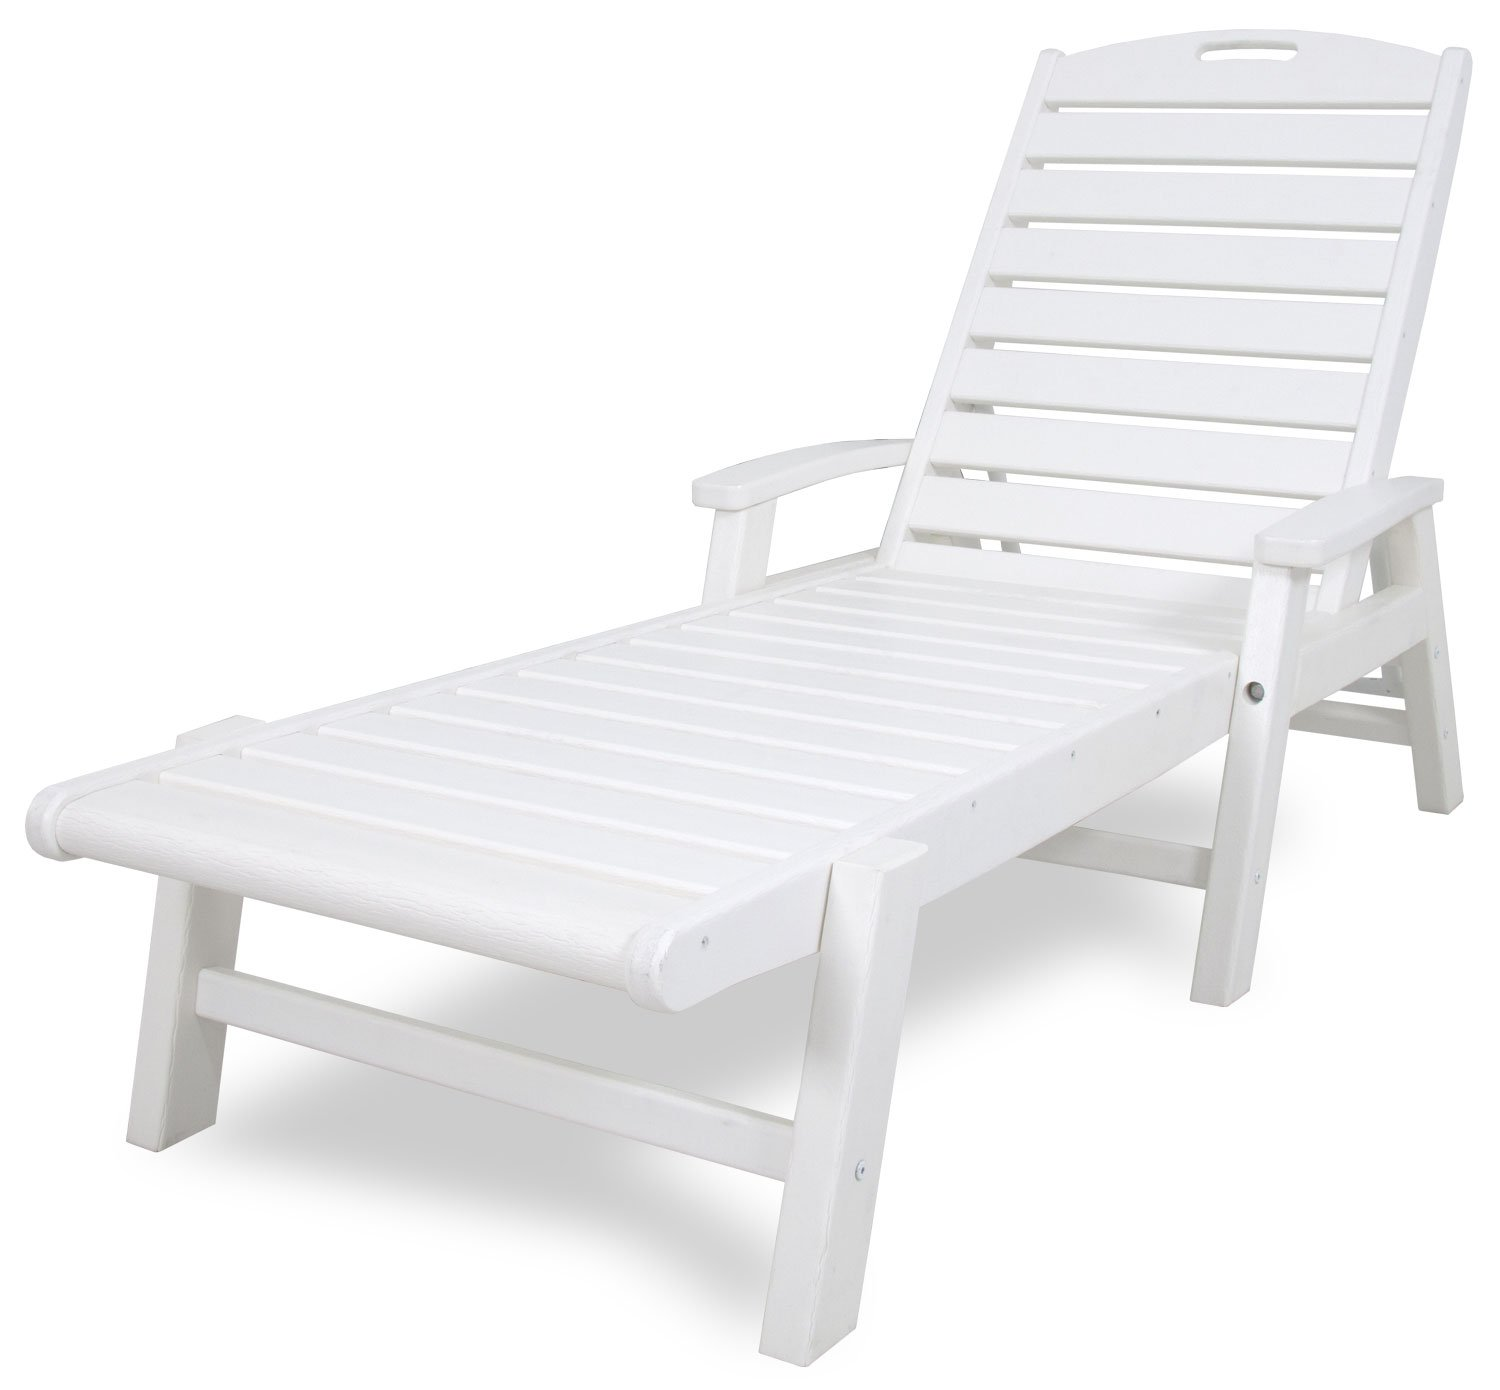 Trex Outdoor Furniture Yacht Club Stackable Chaise Lounger with Arms, Classic White